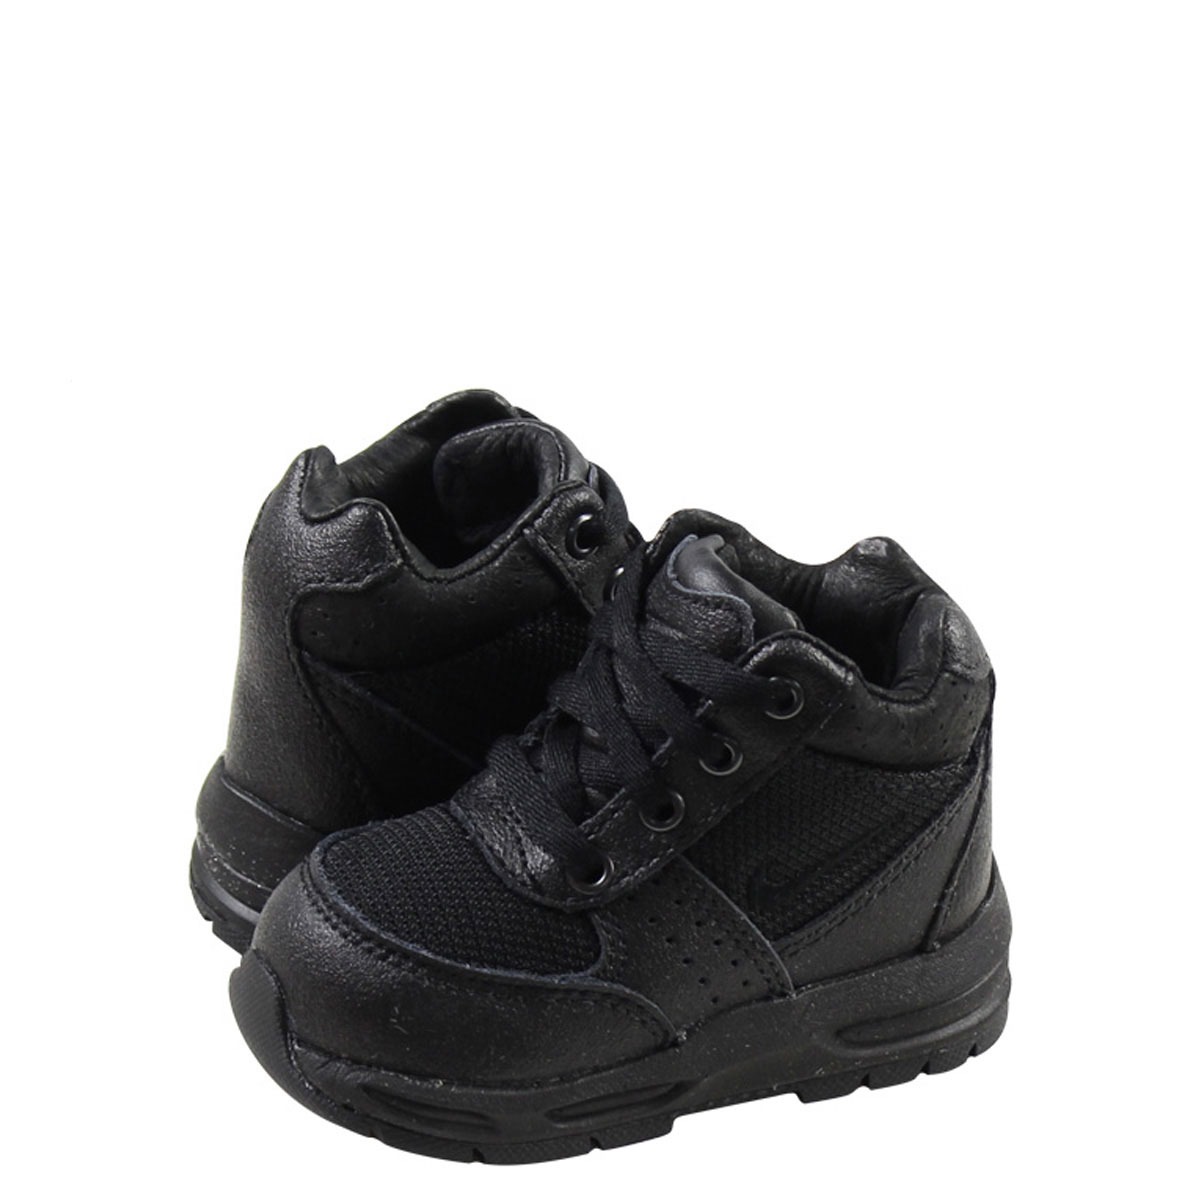 1444c2270383 Whats up Sports  NIKE Nike sneakers baby kids GO AWAY ACG TRAIL BOOT ...